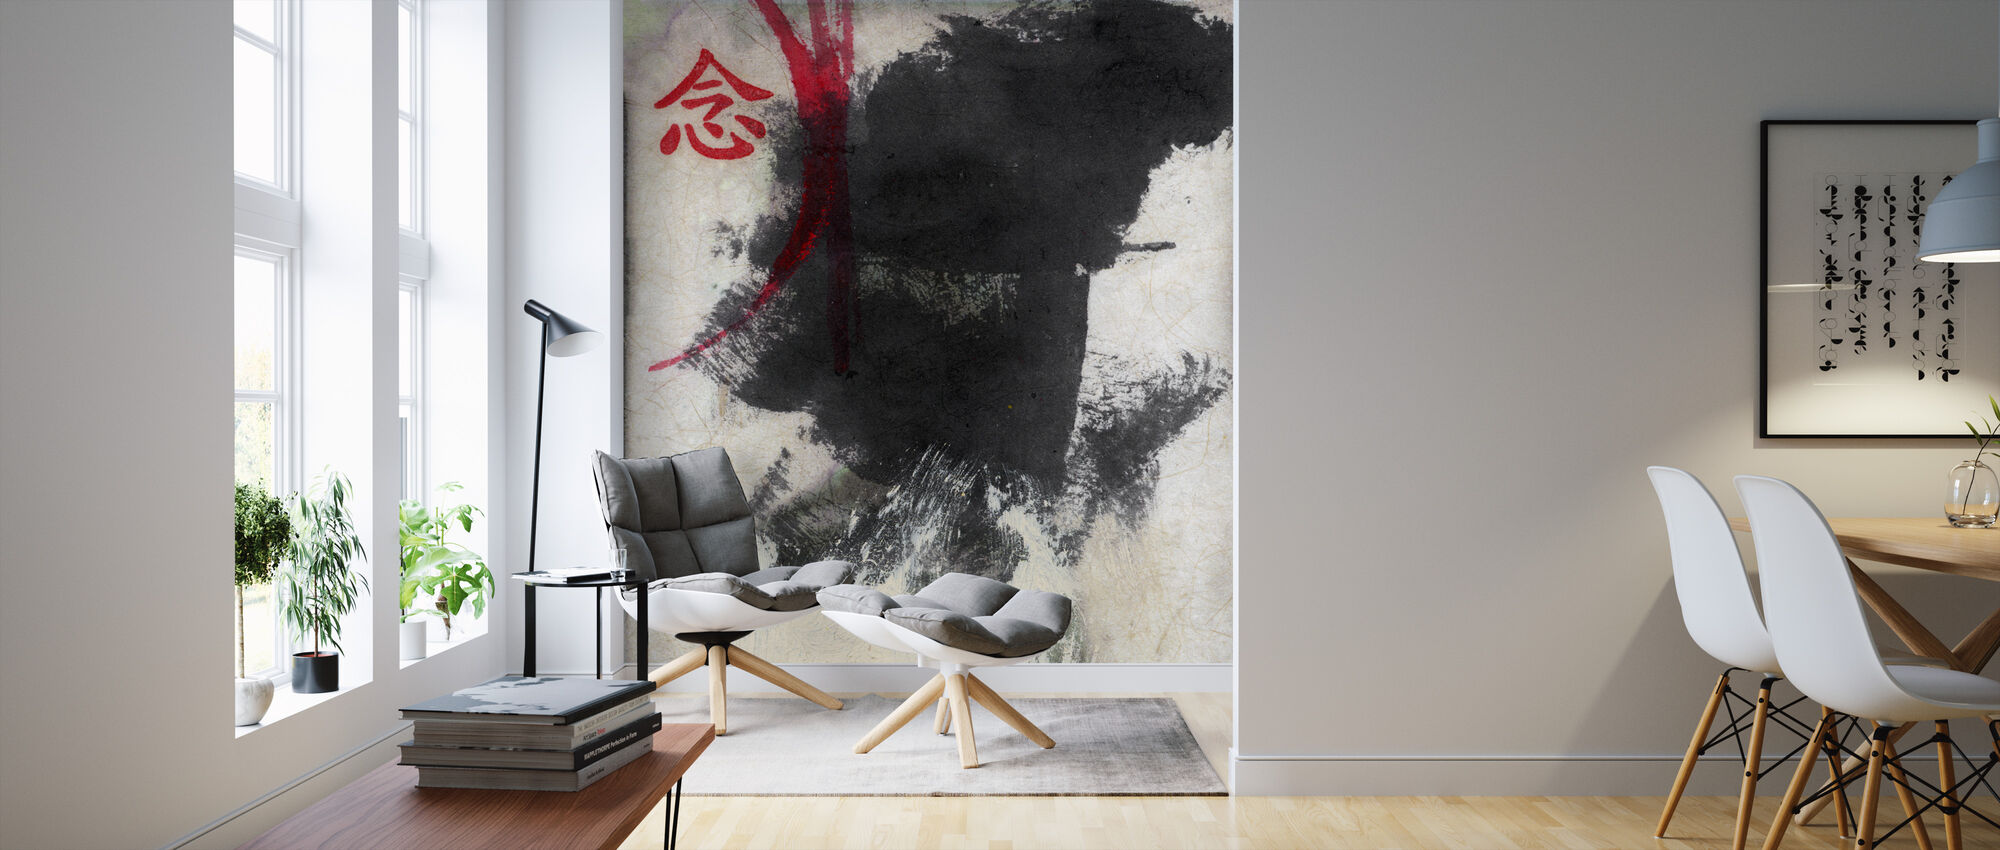 Chinese Character - Thought - Wallpaper - Living Room